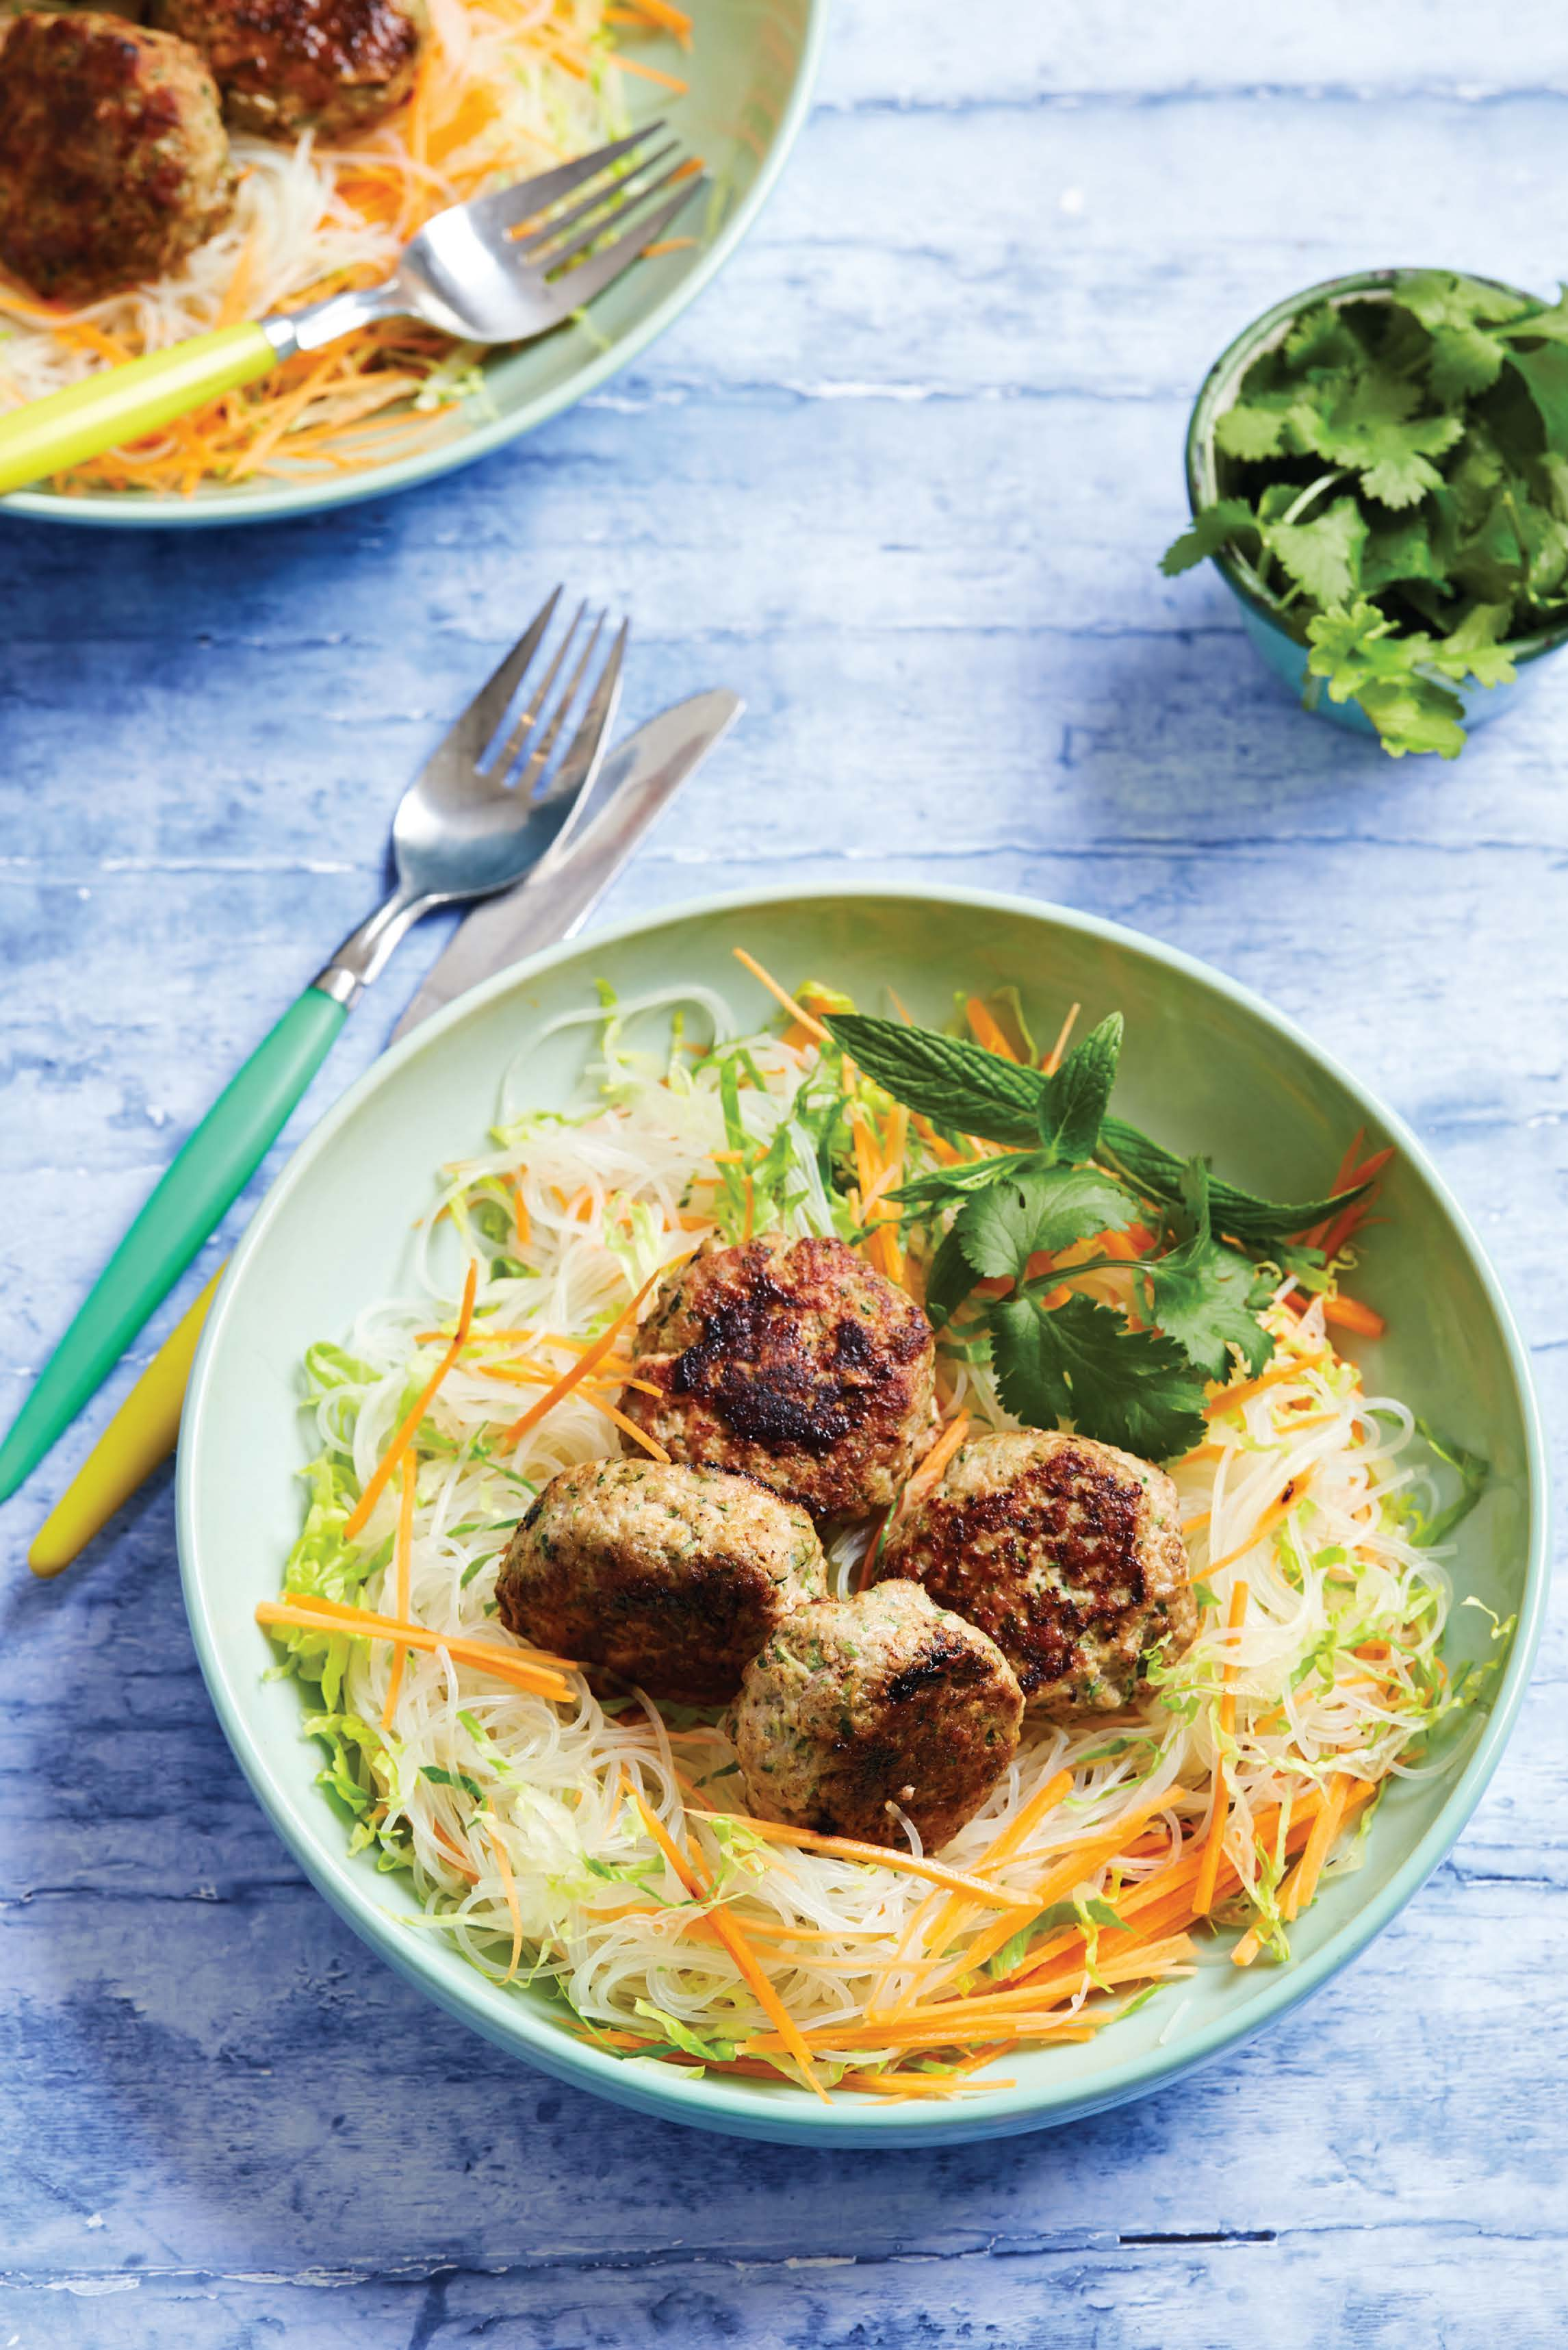 Thai pork patties with noodles